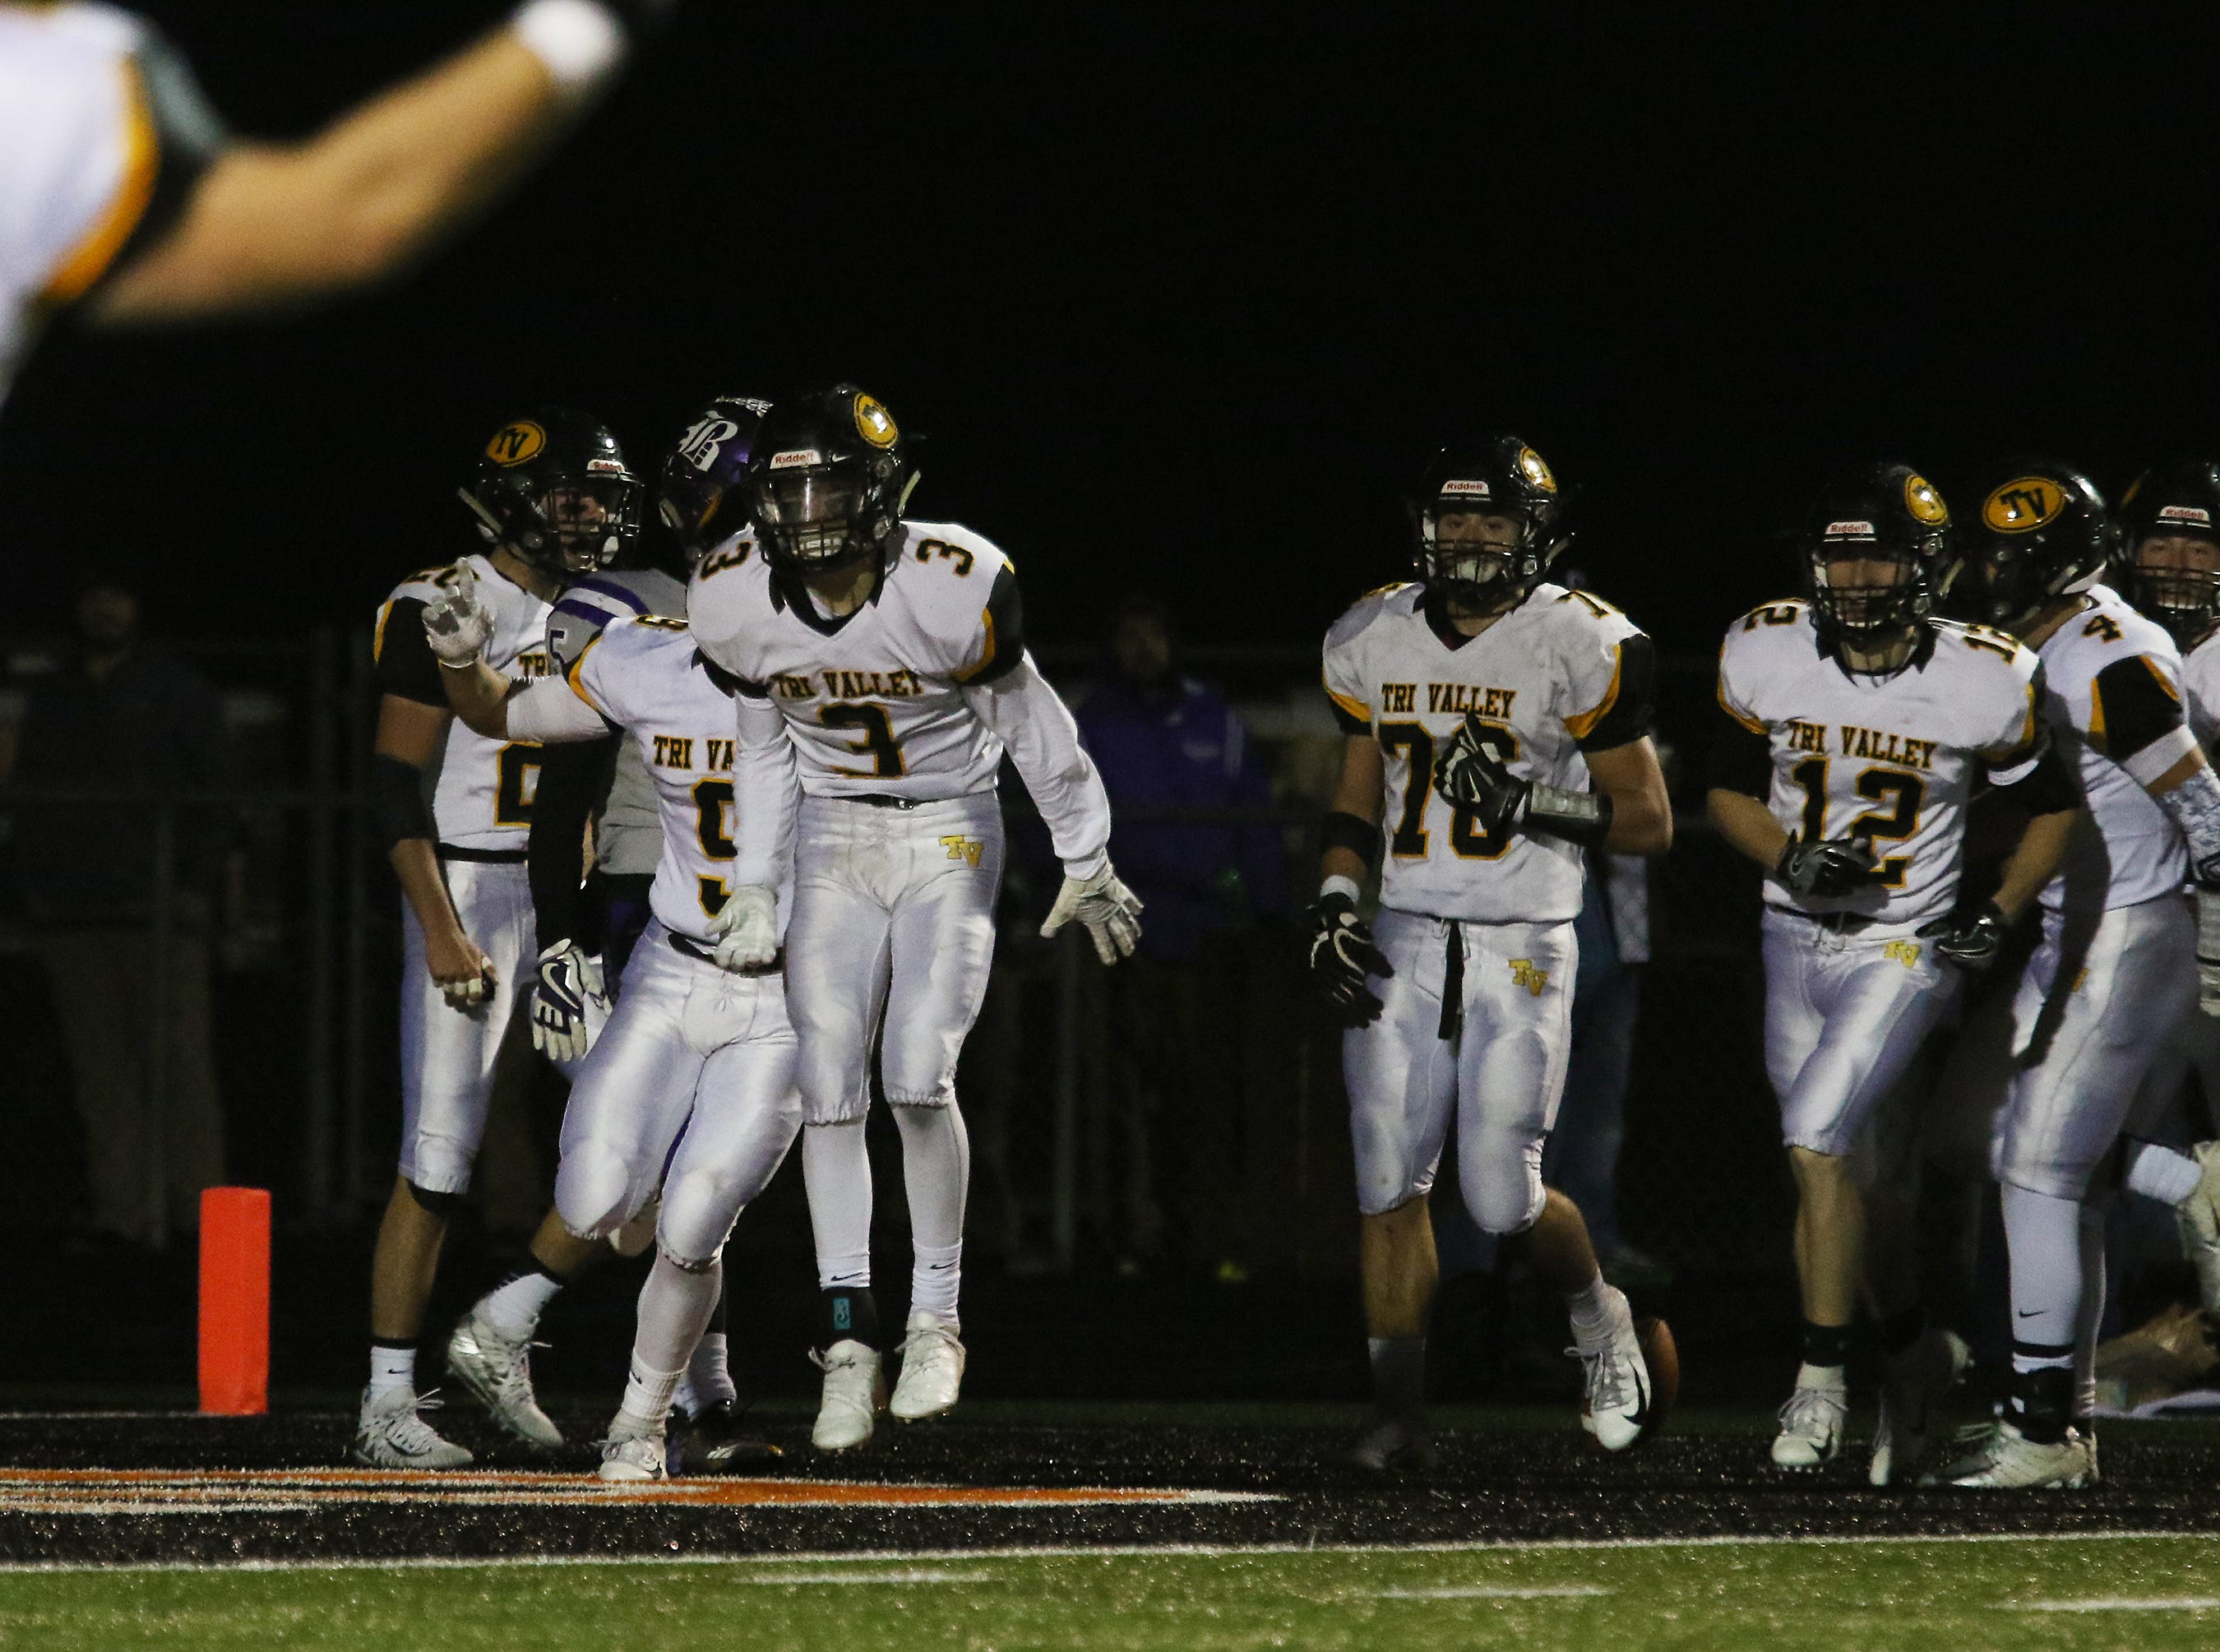 Tri-Valley celebrates Cade Sterling's interception return against Barberton.